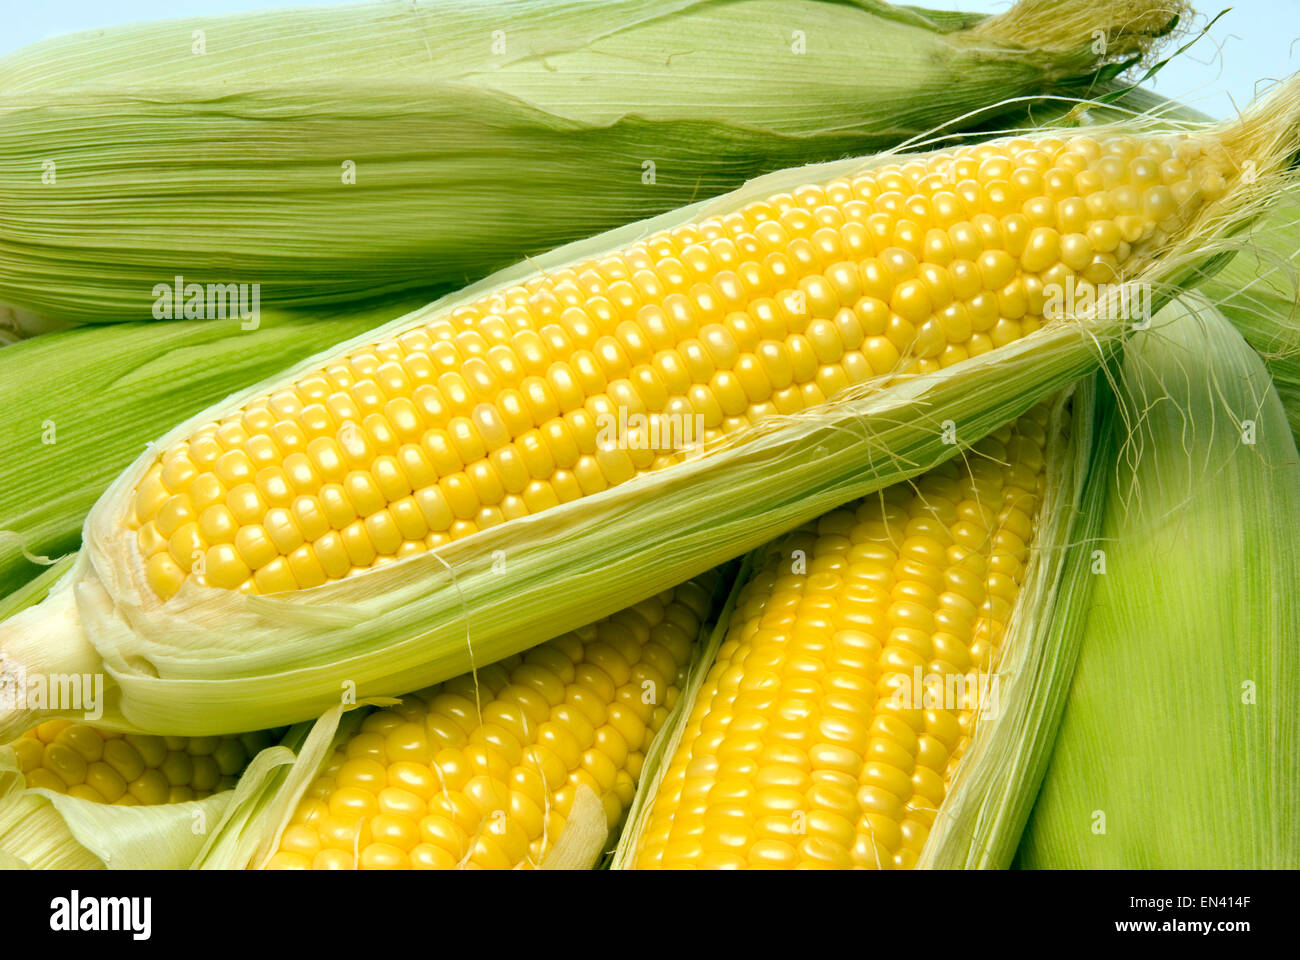 Delicious fresh picked ears of yellow sweet corn. - Stock Image